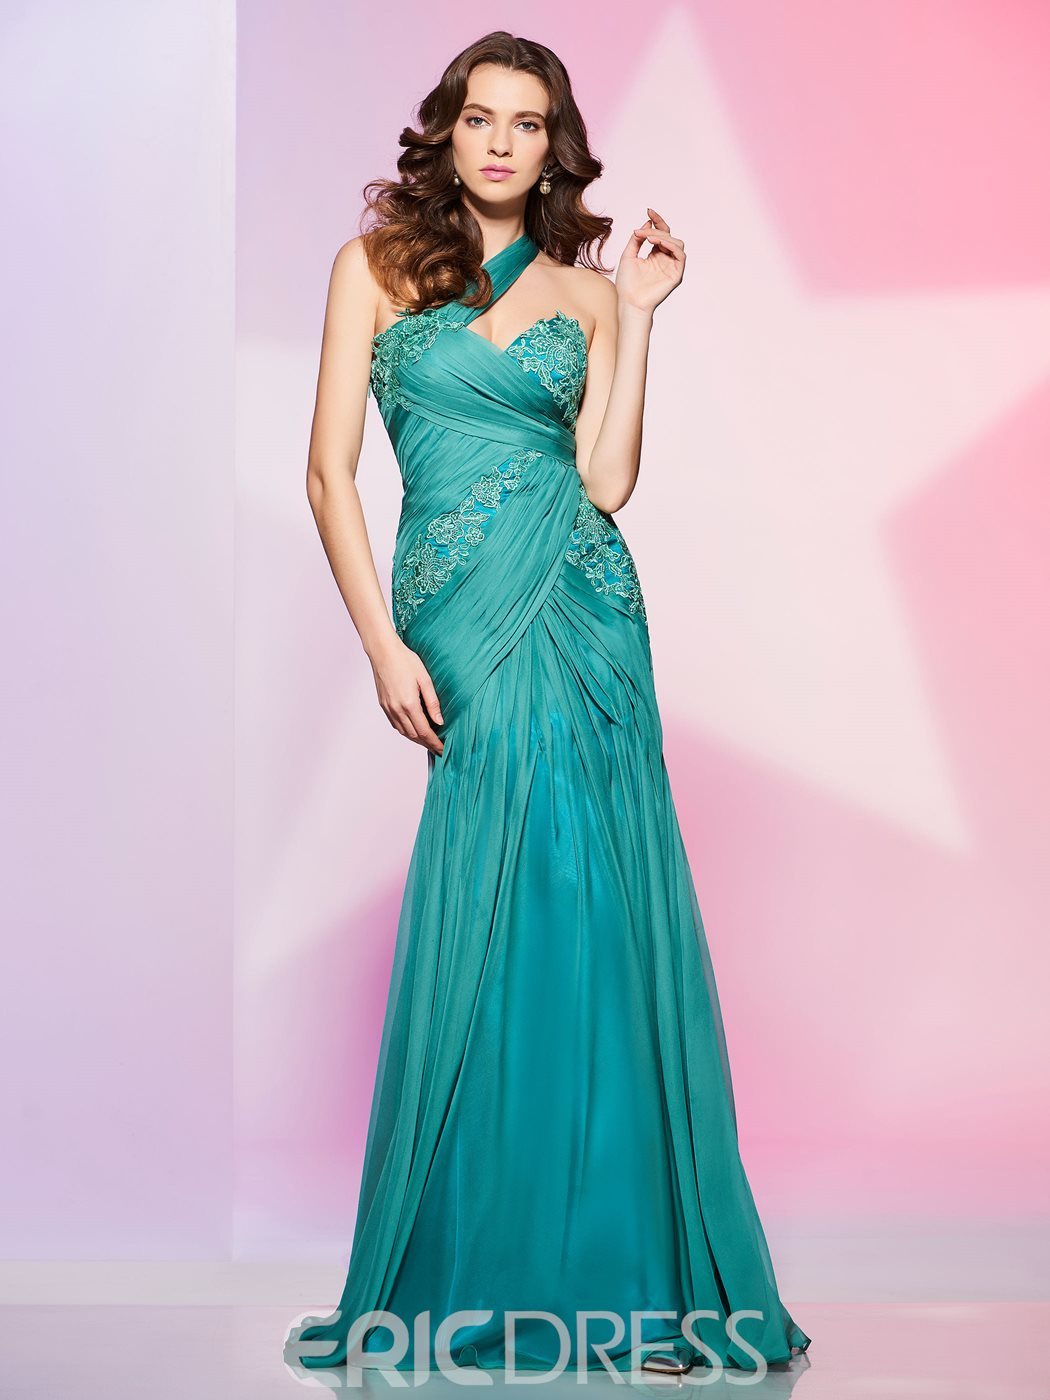 Ericdress Sheath One Shoulder Pleats Applique Floor Length Prom Dress